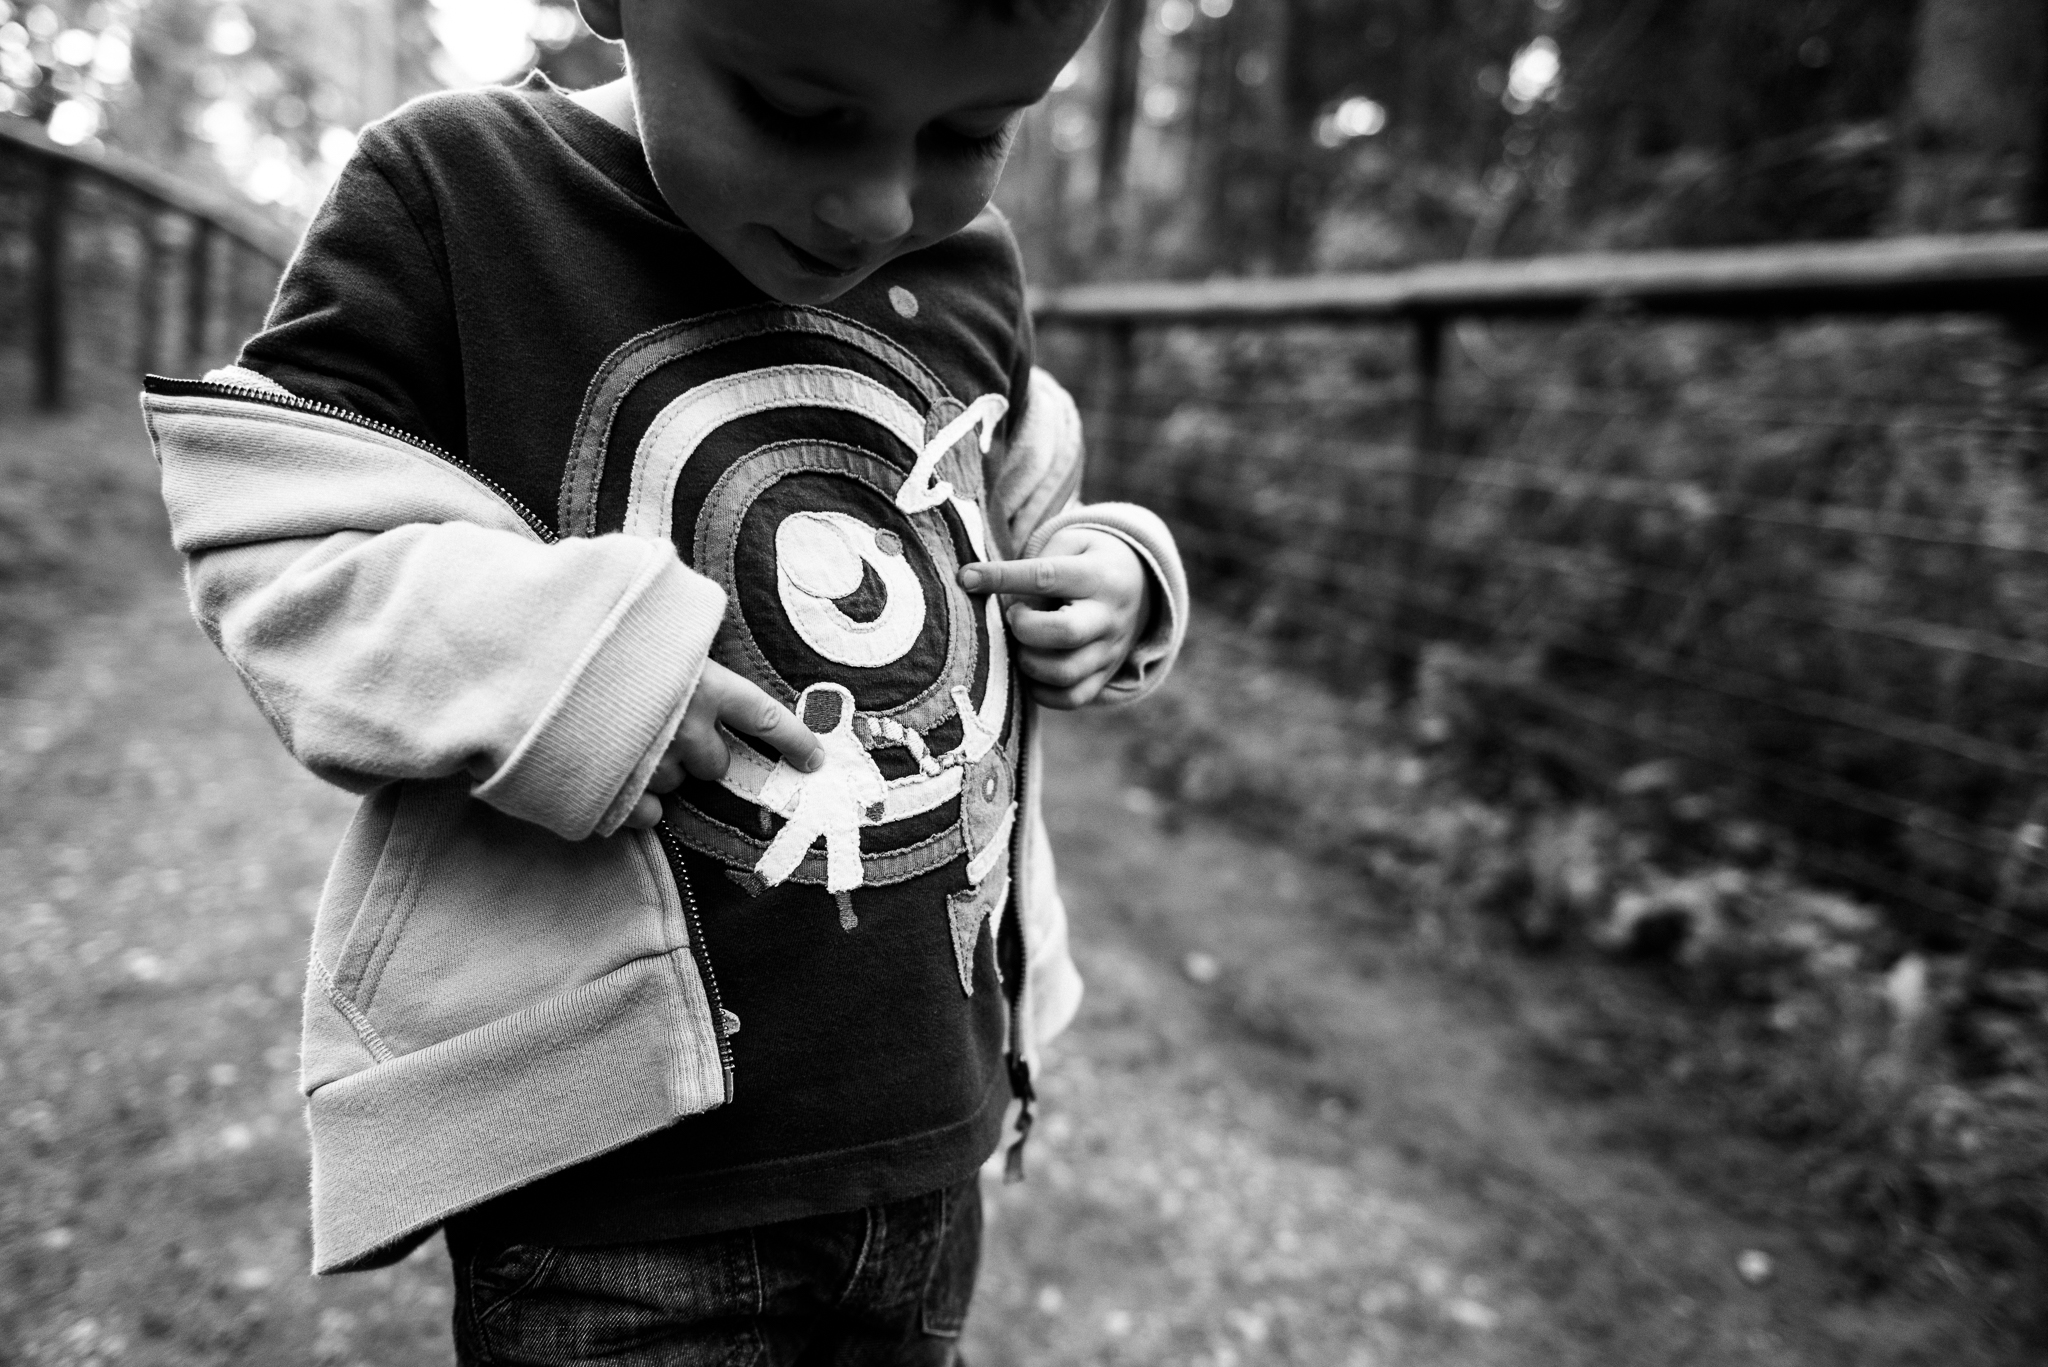 Documentary Family Photography at Clent Hills, Worcestershire Family Lifestyle Photography Woods Outdoors Trees Flying Kite - Jenny Harper-21.jpg